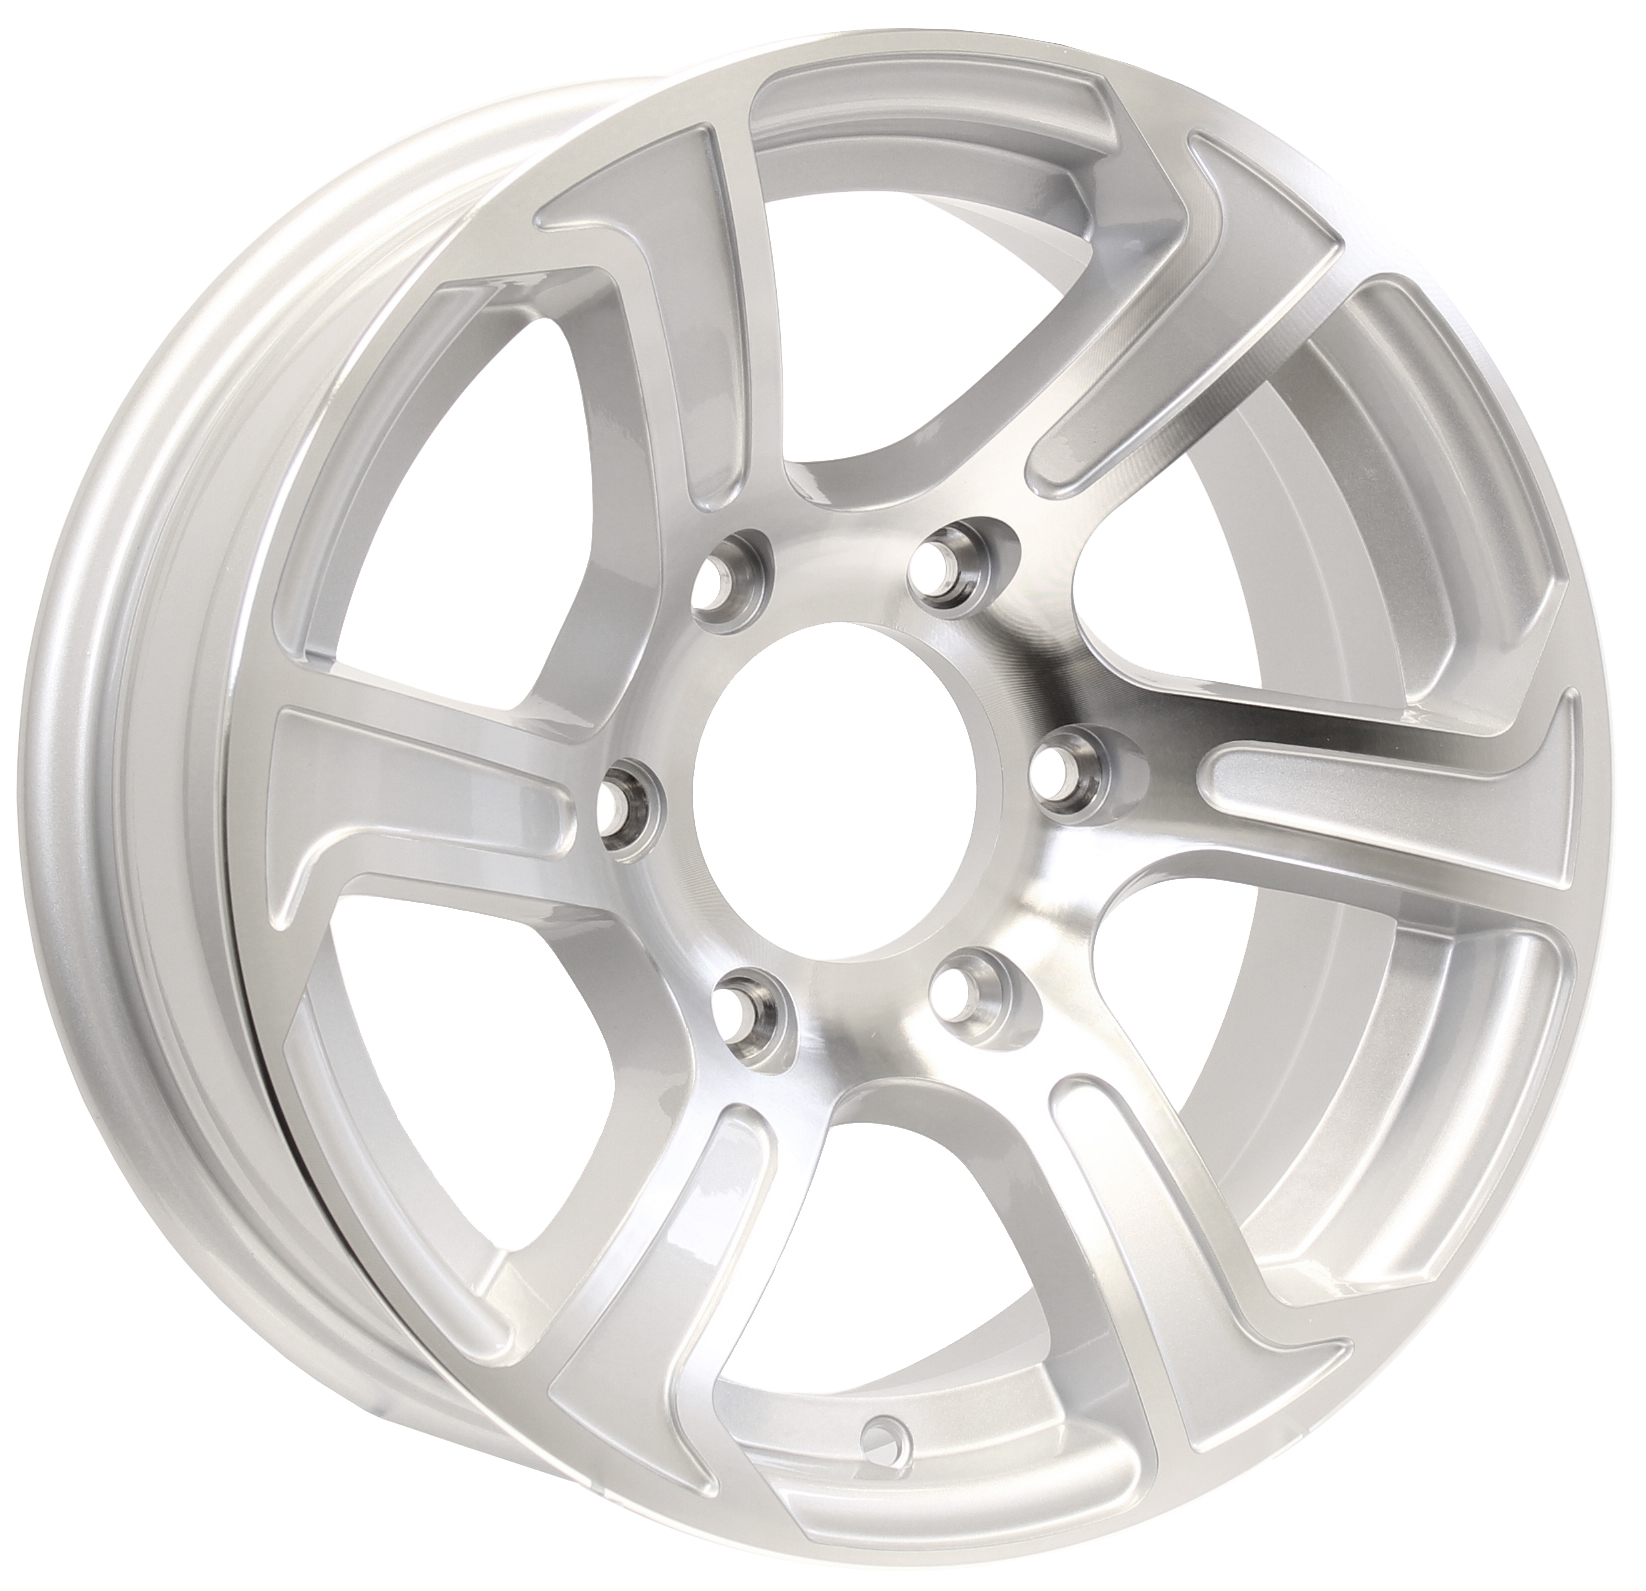 "Summit 15"" 6-Lug Silver Aluminum Trailer Wheel Image"